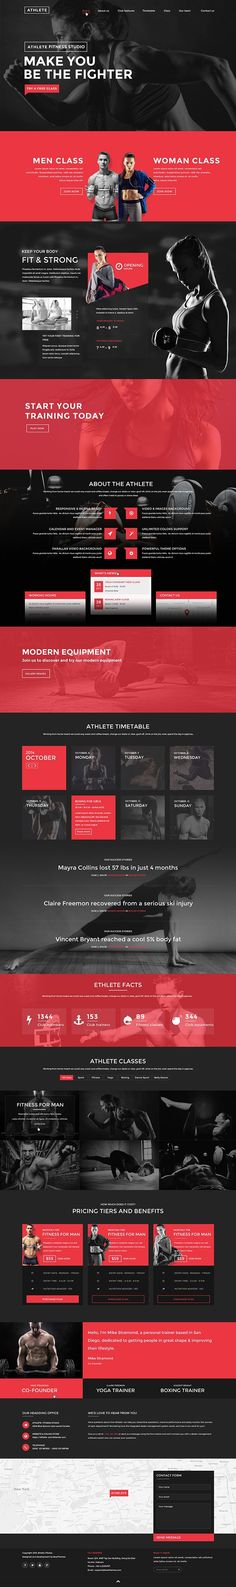 Athlete - Fitness, Gym and Sport Wordpress theme on Behance